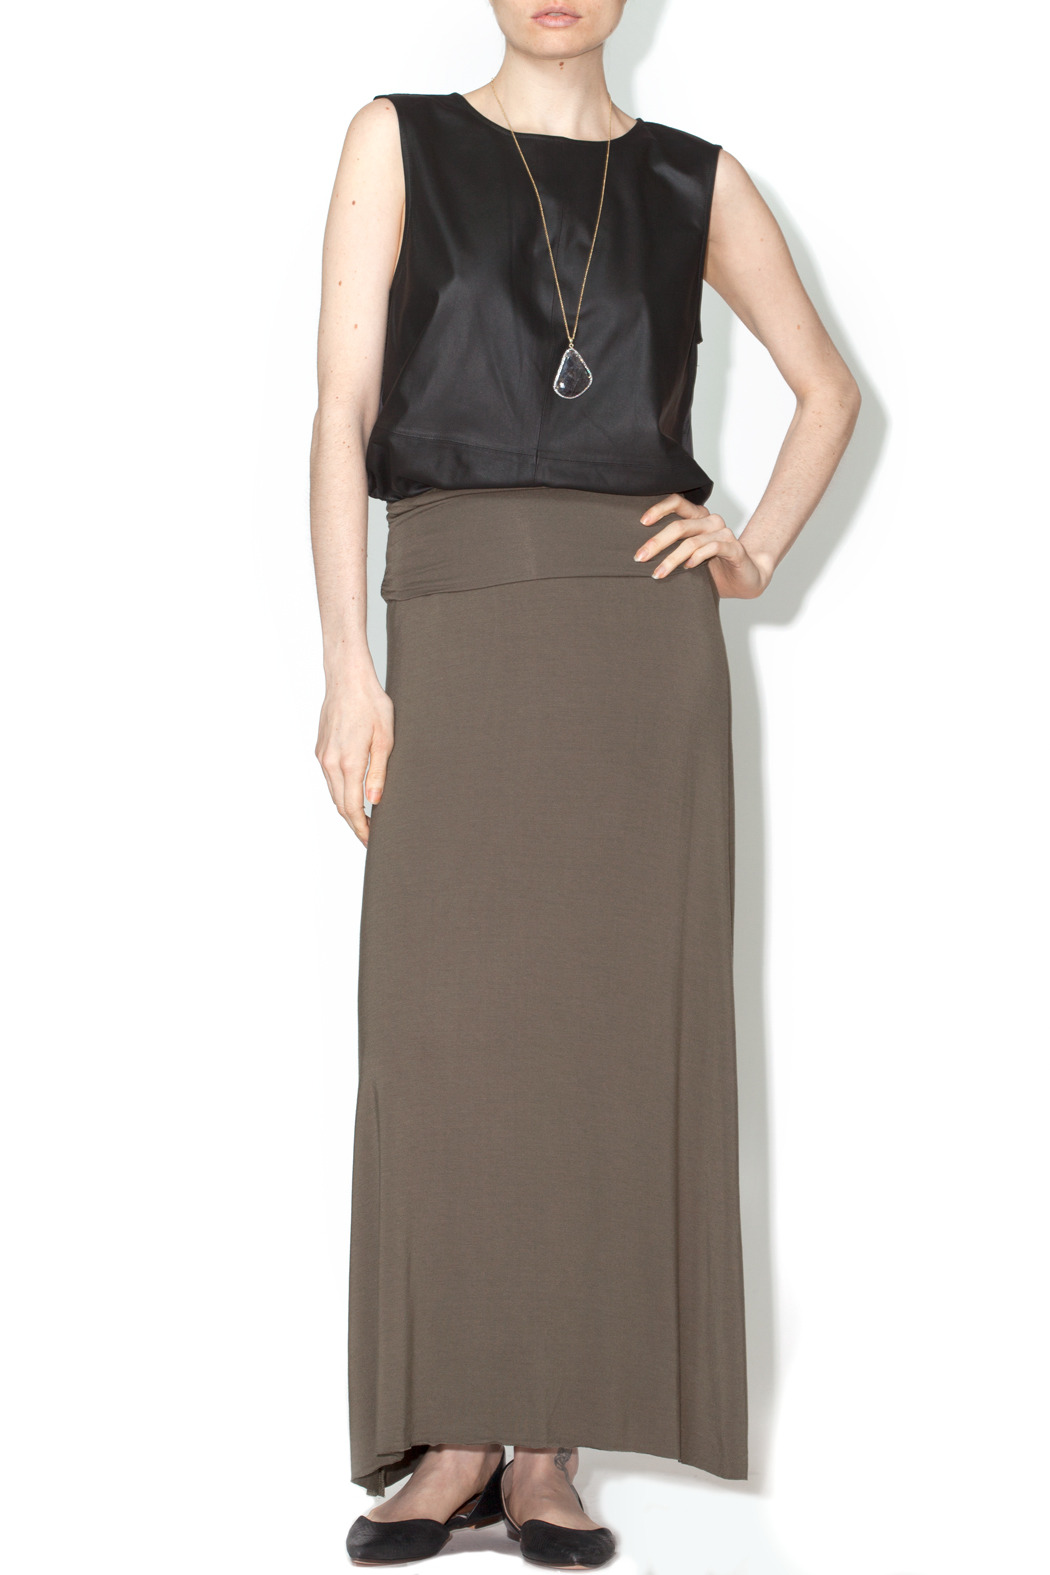 luxx knit olive maxi skirt from montana by sole